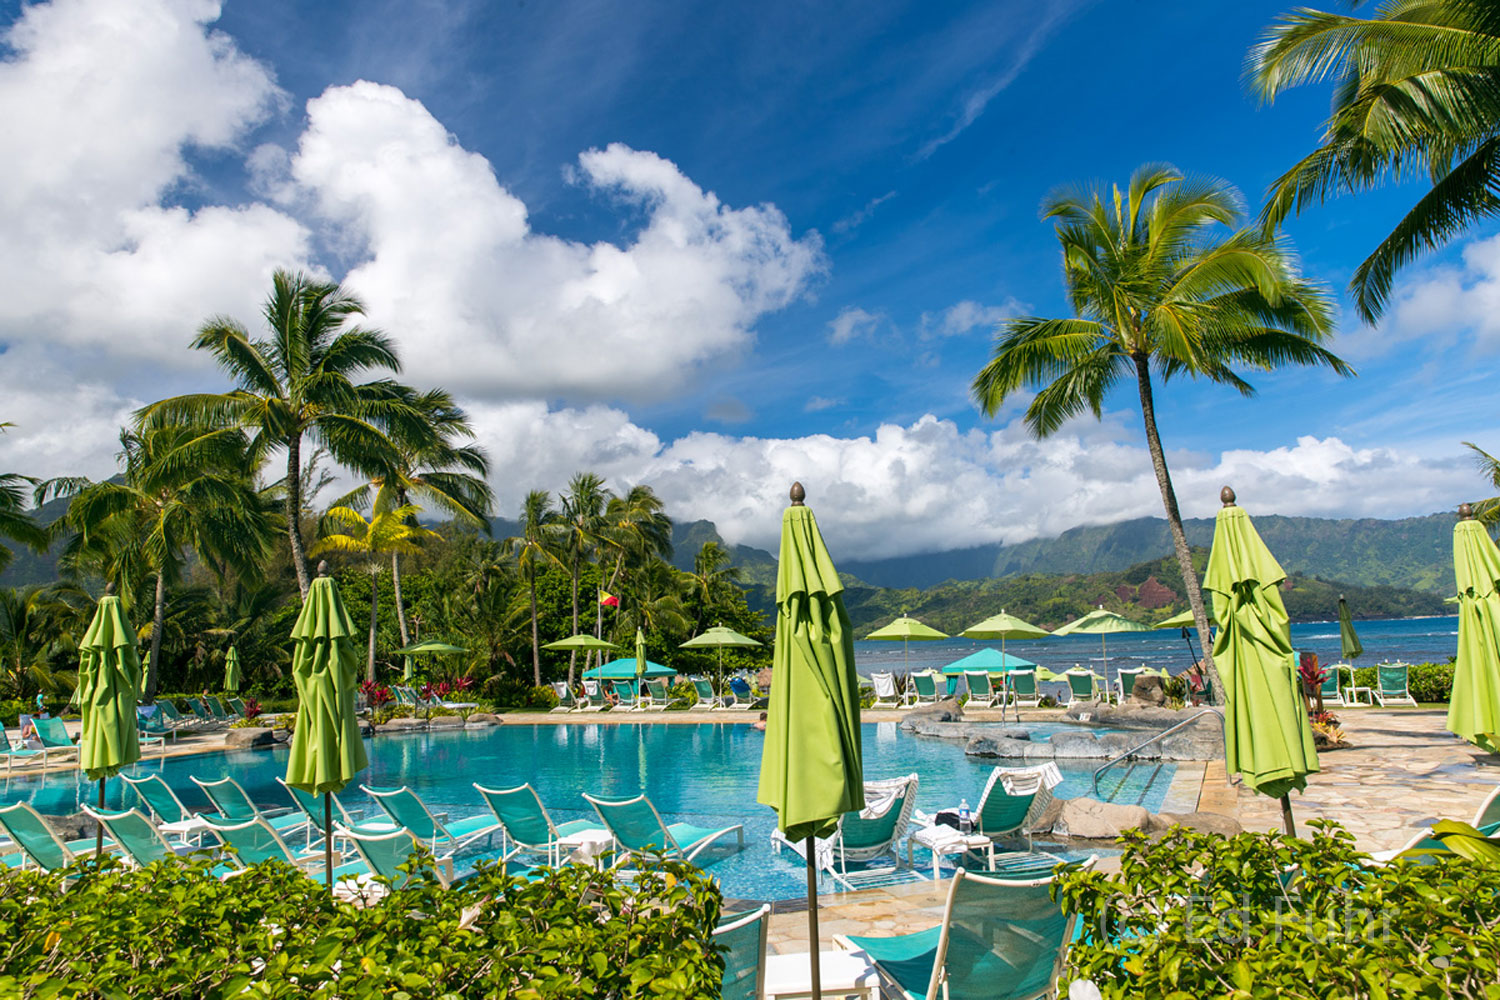 From the St. Regis, a sweeping view of beaches, pools, Honalei Bay and the Kauai mountains.